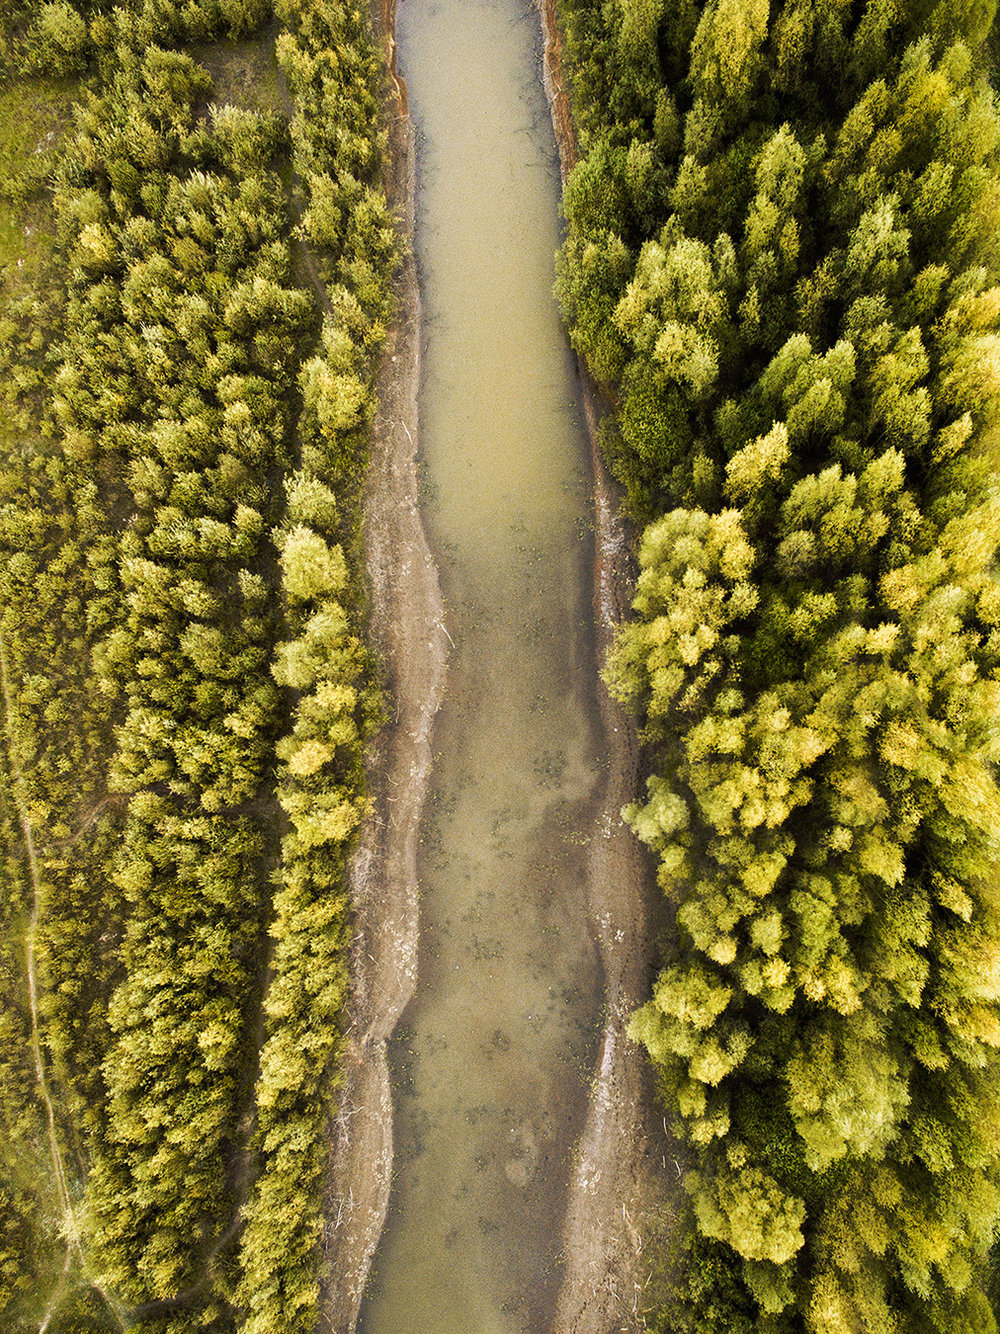 Kanaal (2018)    Kanaal  is a series of carefully selected aerial landscape photographs captured above canals of Overijssel, The Netherlands. You can read more about the series  here .